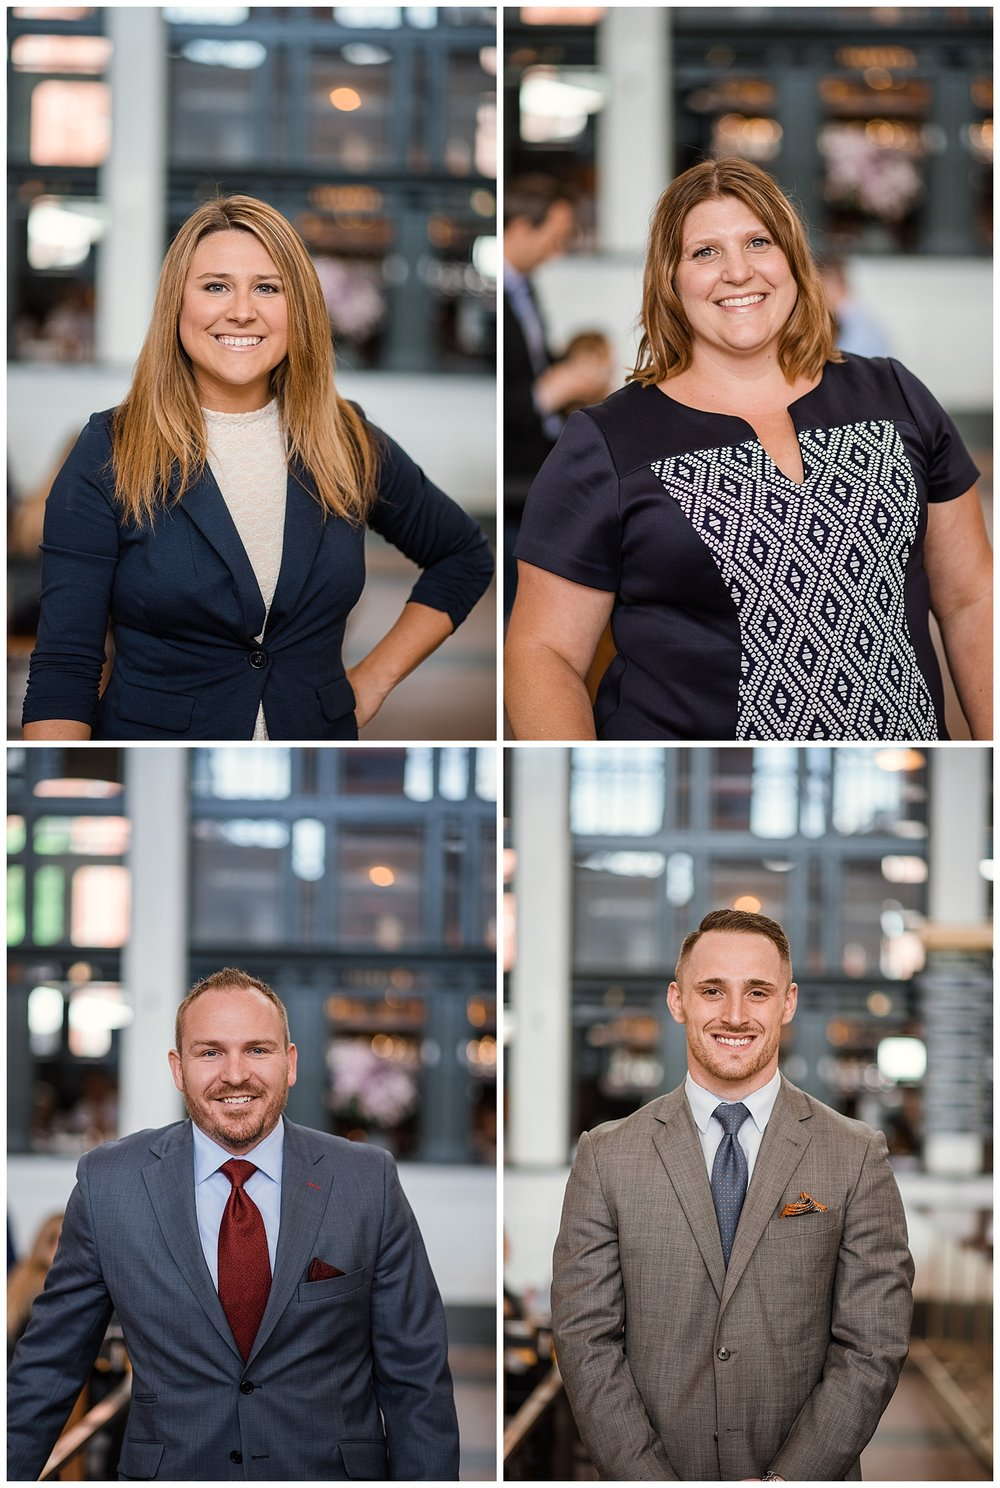 Men and Women Headshot, Corporate headshot, best headshot photographer denver, Colorado commercial photography, denver commercial photography, union station headshots, union station photography, female professional headshot, male professional headshot,